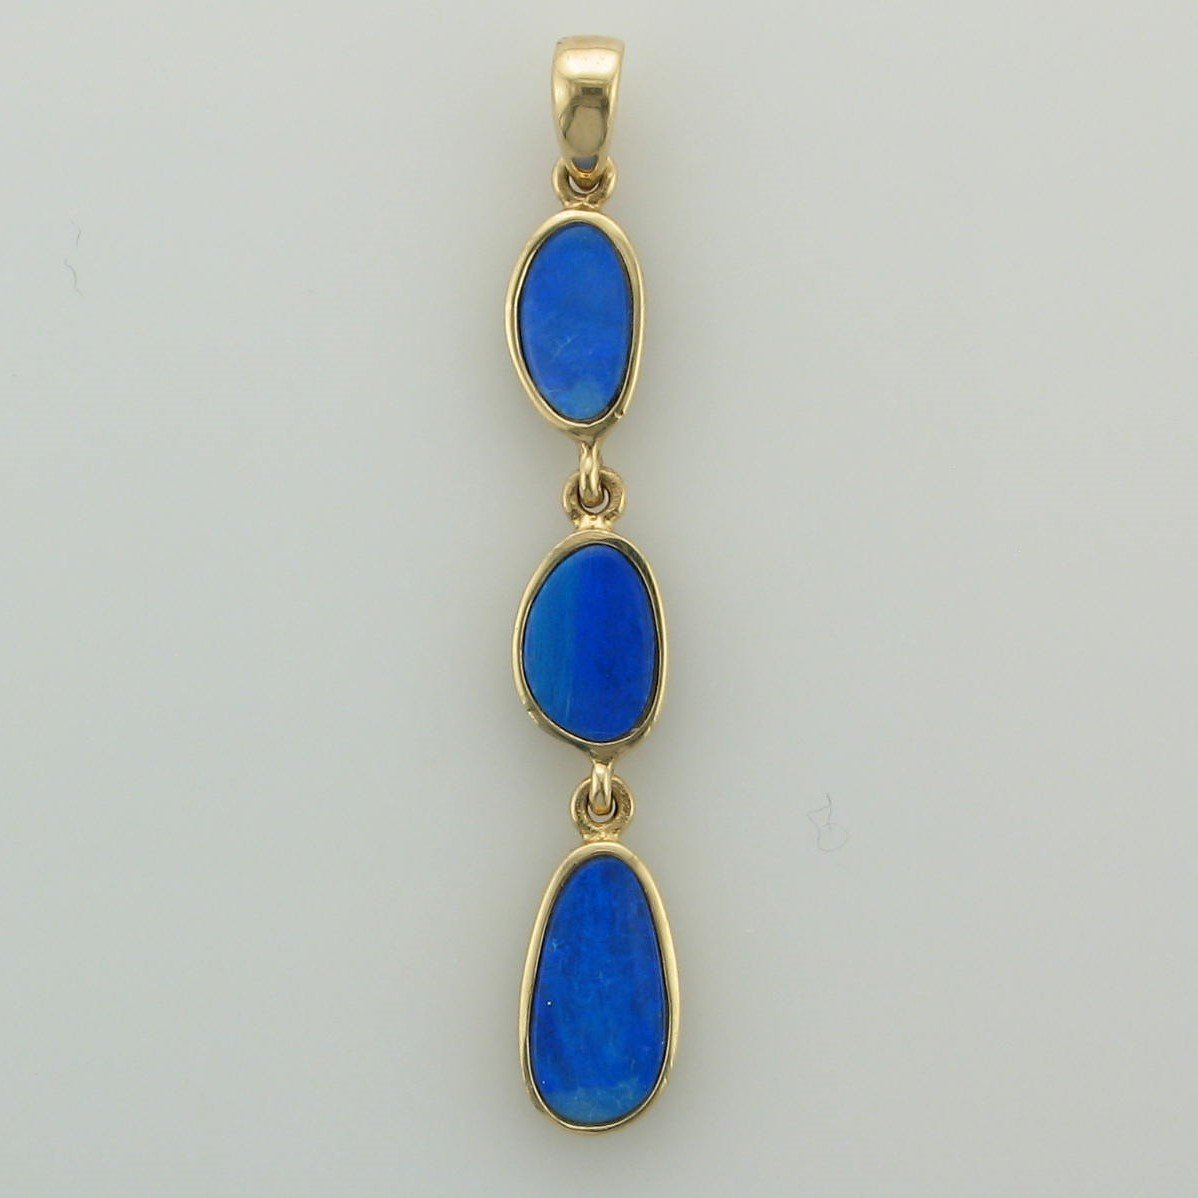 Gold Australian Opal Doublet Pendant Set in 14 Karat Yellow Gold